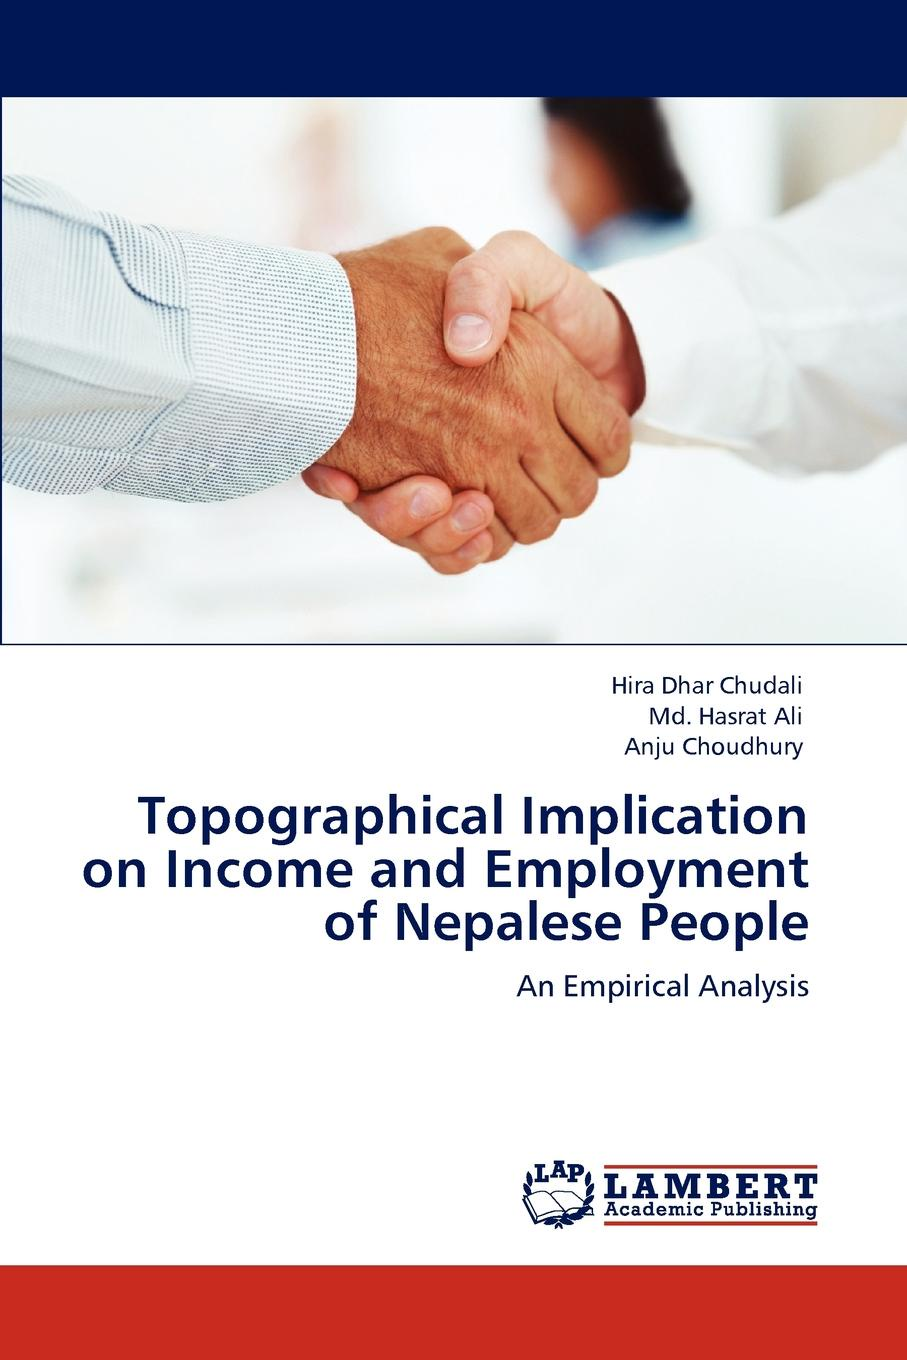 Hira Dhar Chudali, Md. Hasrat Ali, Anju Choudhury Topographical Implication on Income and Employment of Nepalese People study of icds scheme in rural and tribal projects in maharashtra